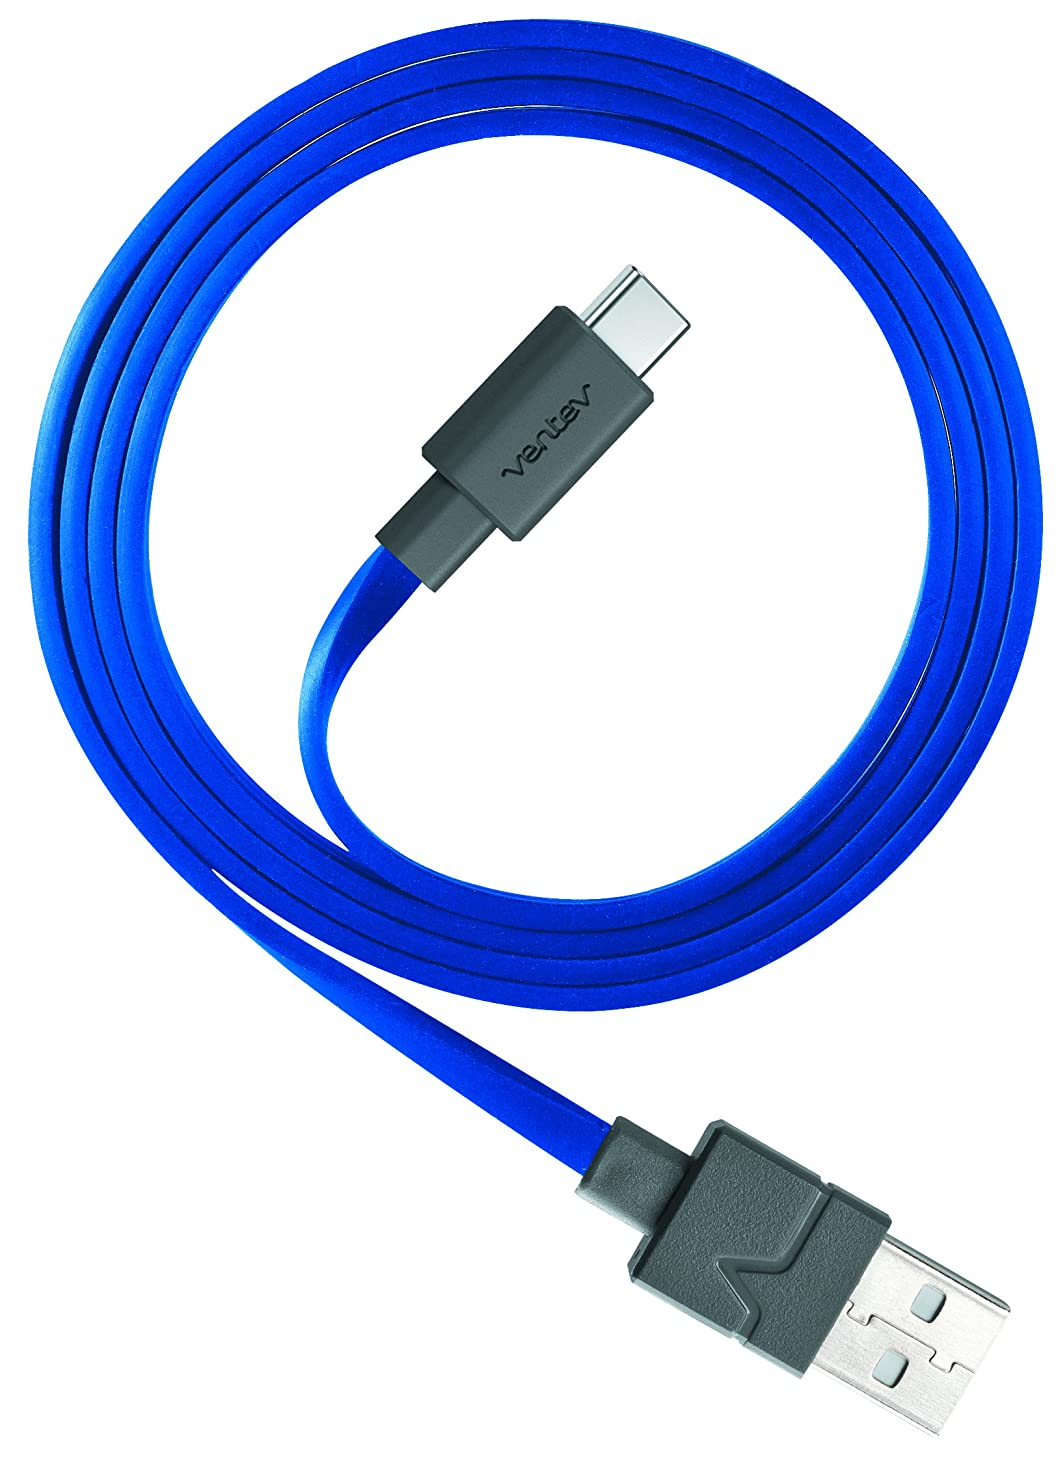 Ventev Chargesync USB Cable | Type A-C, Transfer from Device to Most PC or MAC, Flat, Tangle-Free Cable, Supports Rapid Rate Charging up to 3A, Cable for Samsung Galaxy TabPro S, LG G5 | 6ft Blue